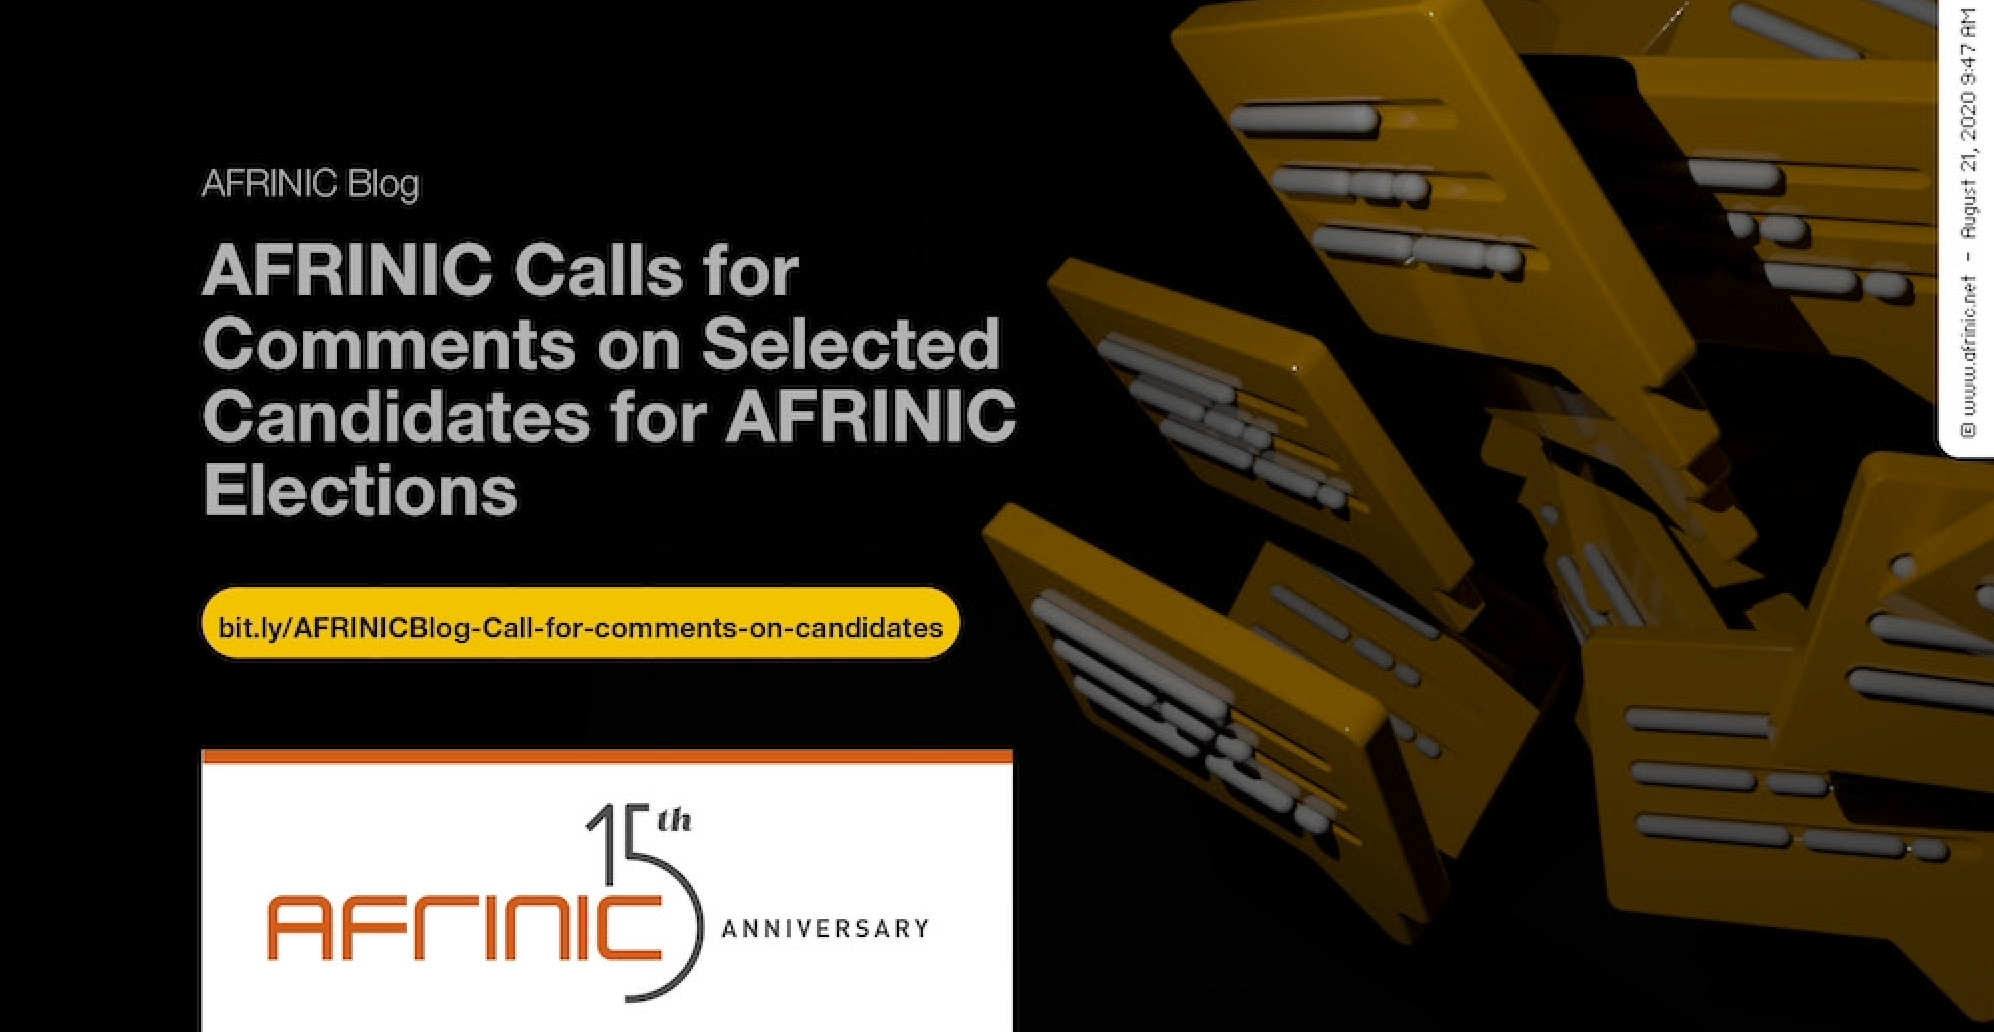 AFRINIC Calls for Comments on Selected Candidates for AFRINIC Elections